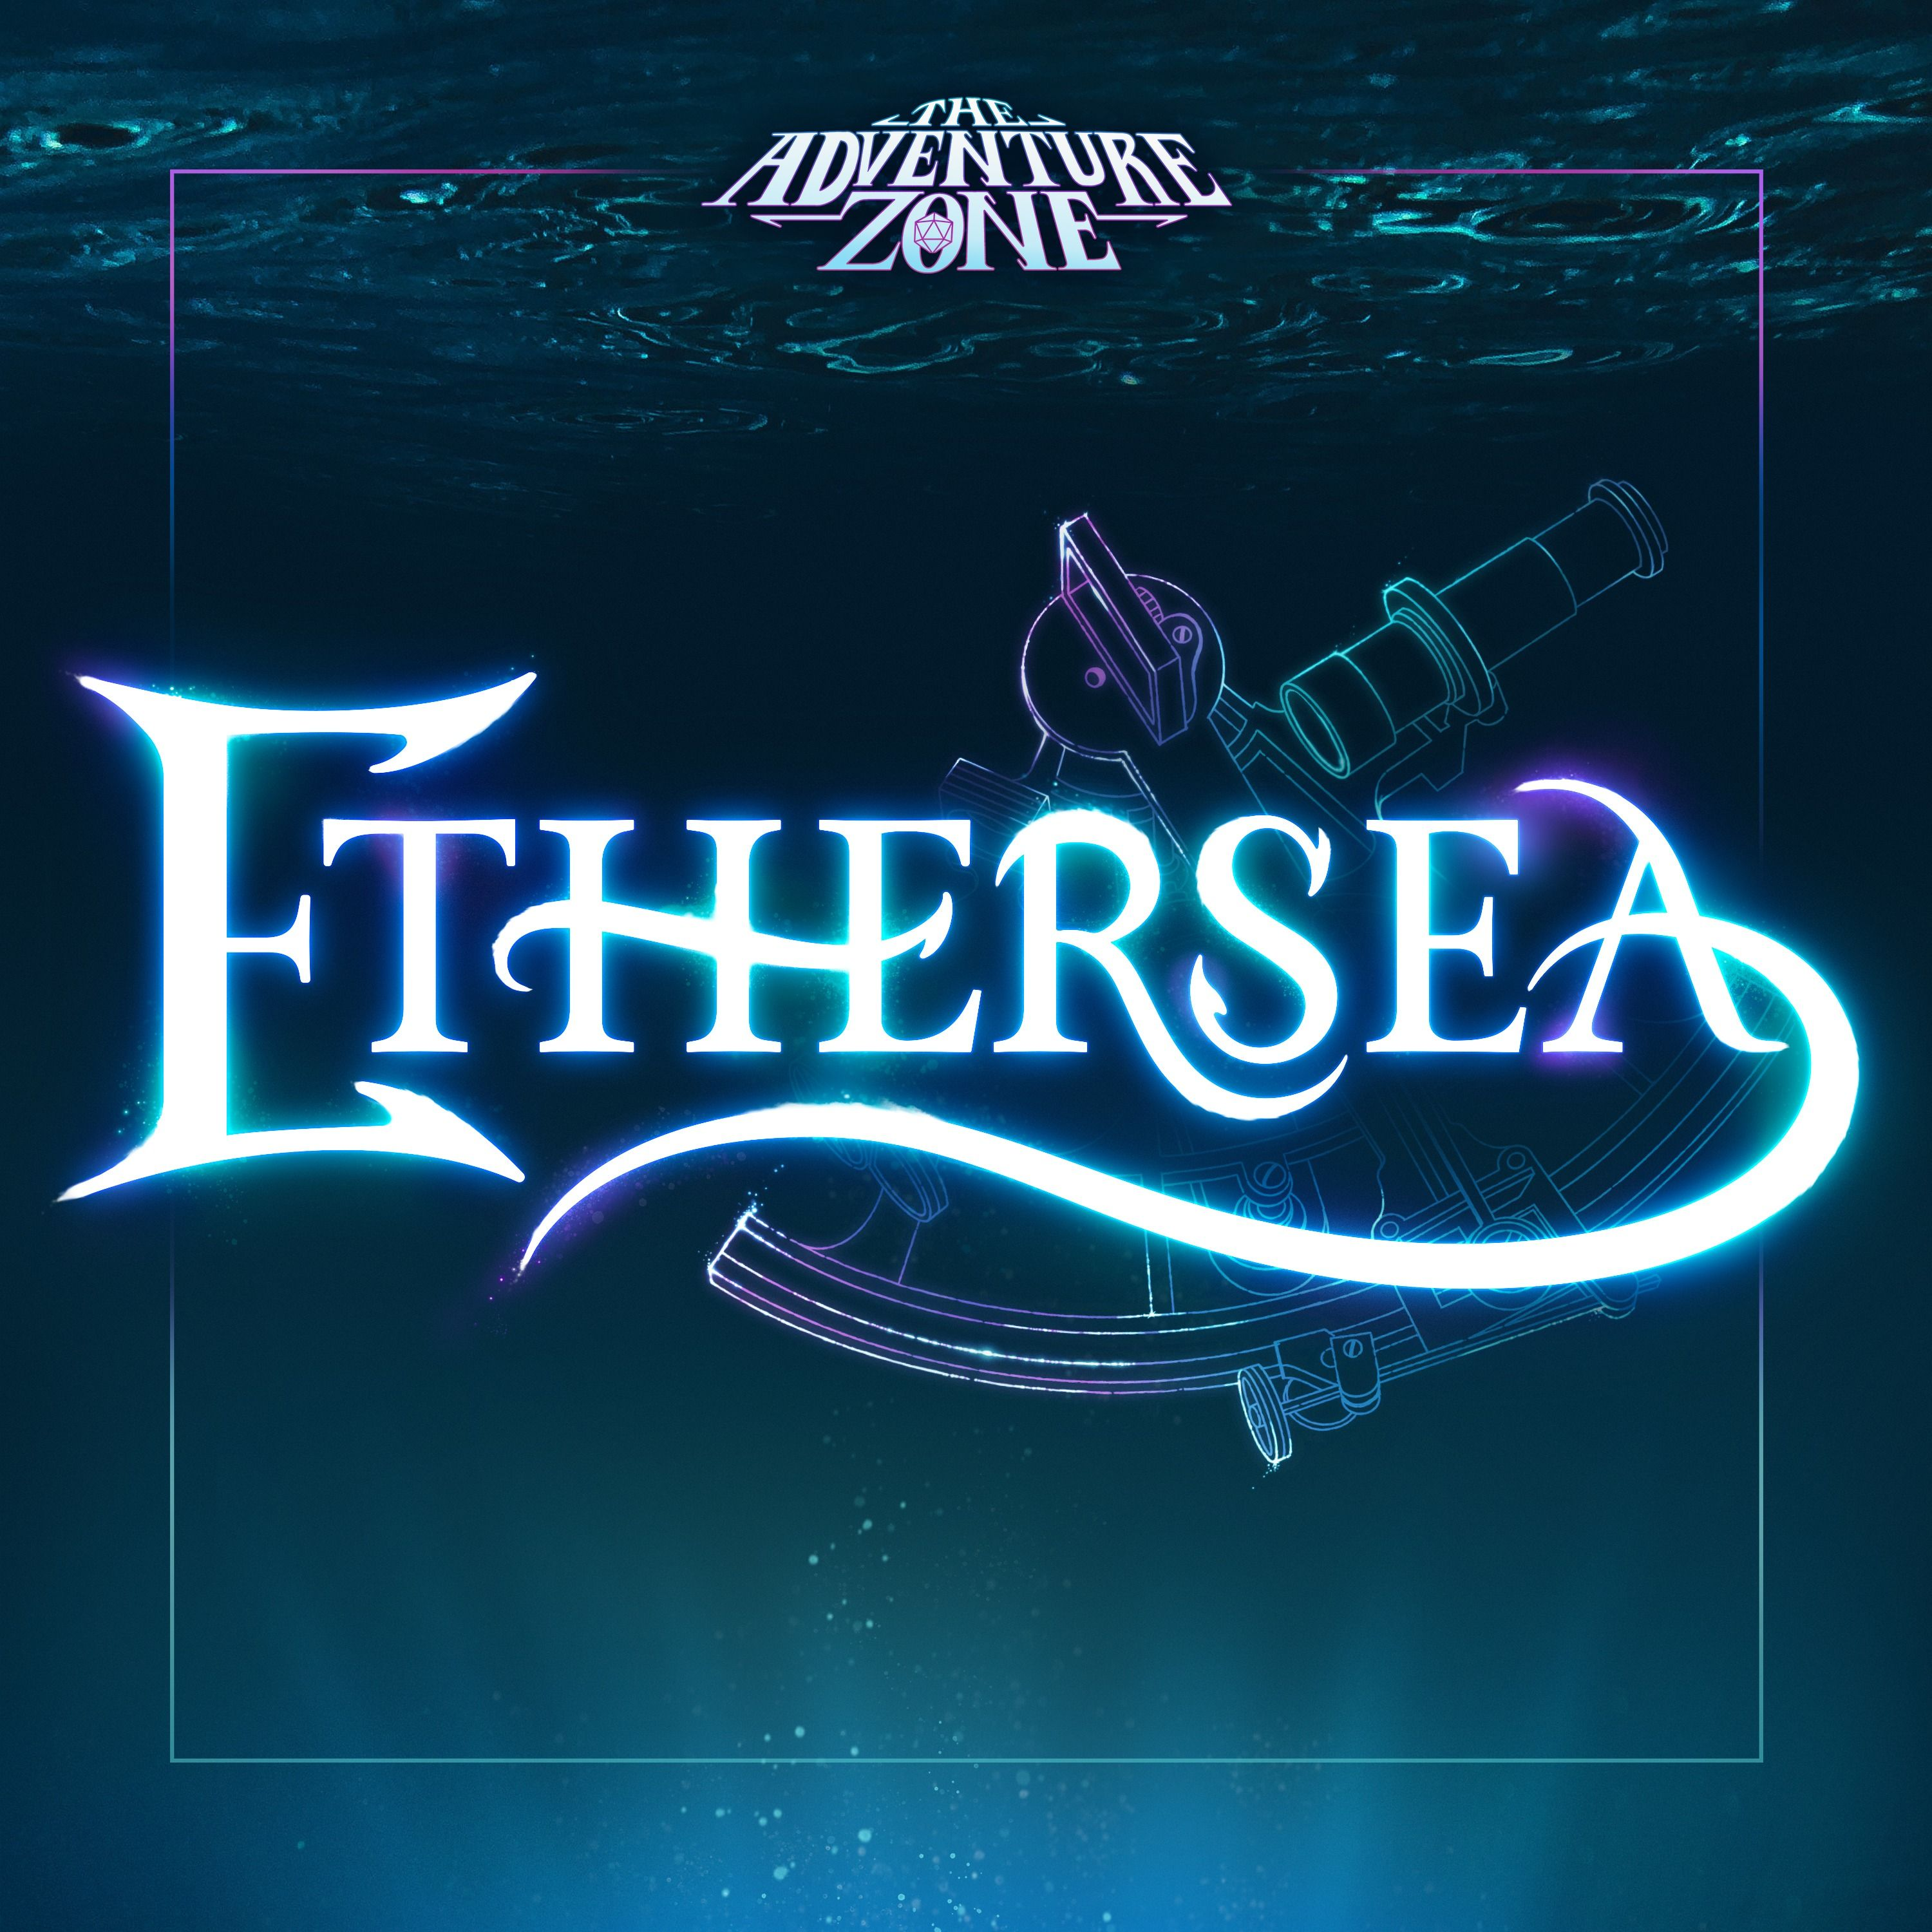 The Adventure Zone: Ethersea — Prologue V: The Weight of History